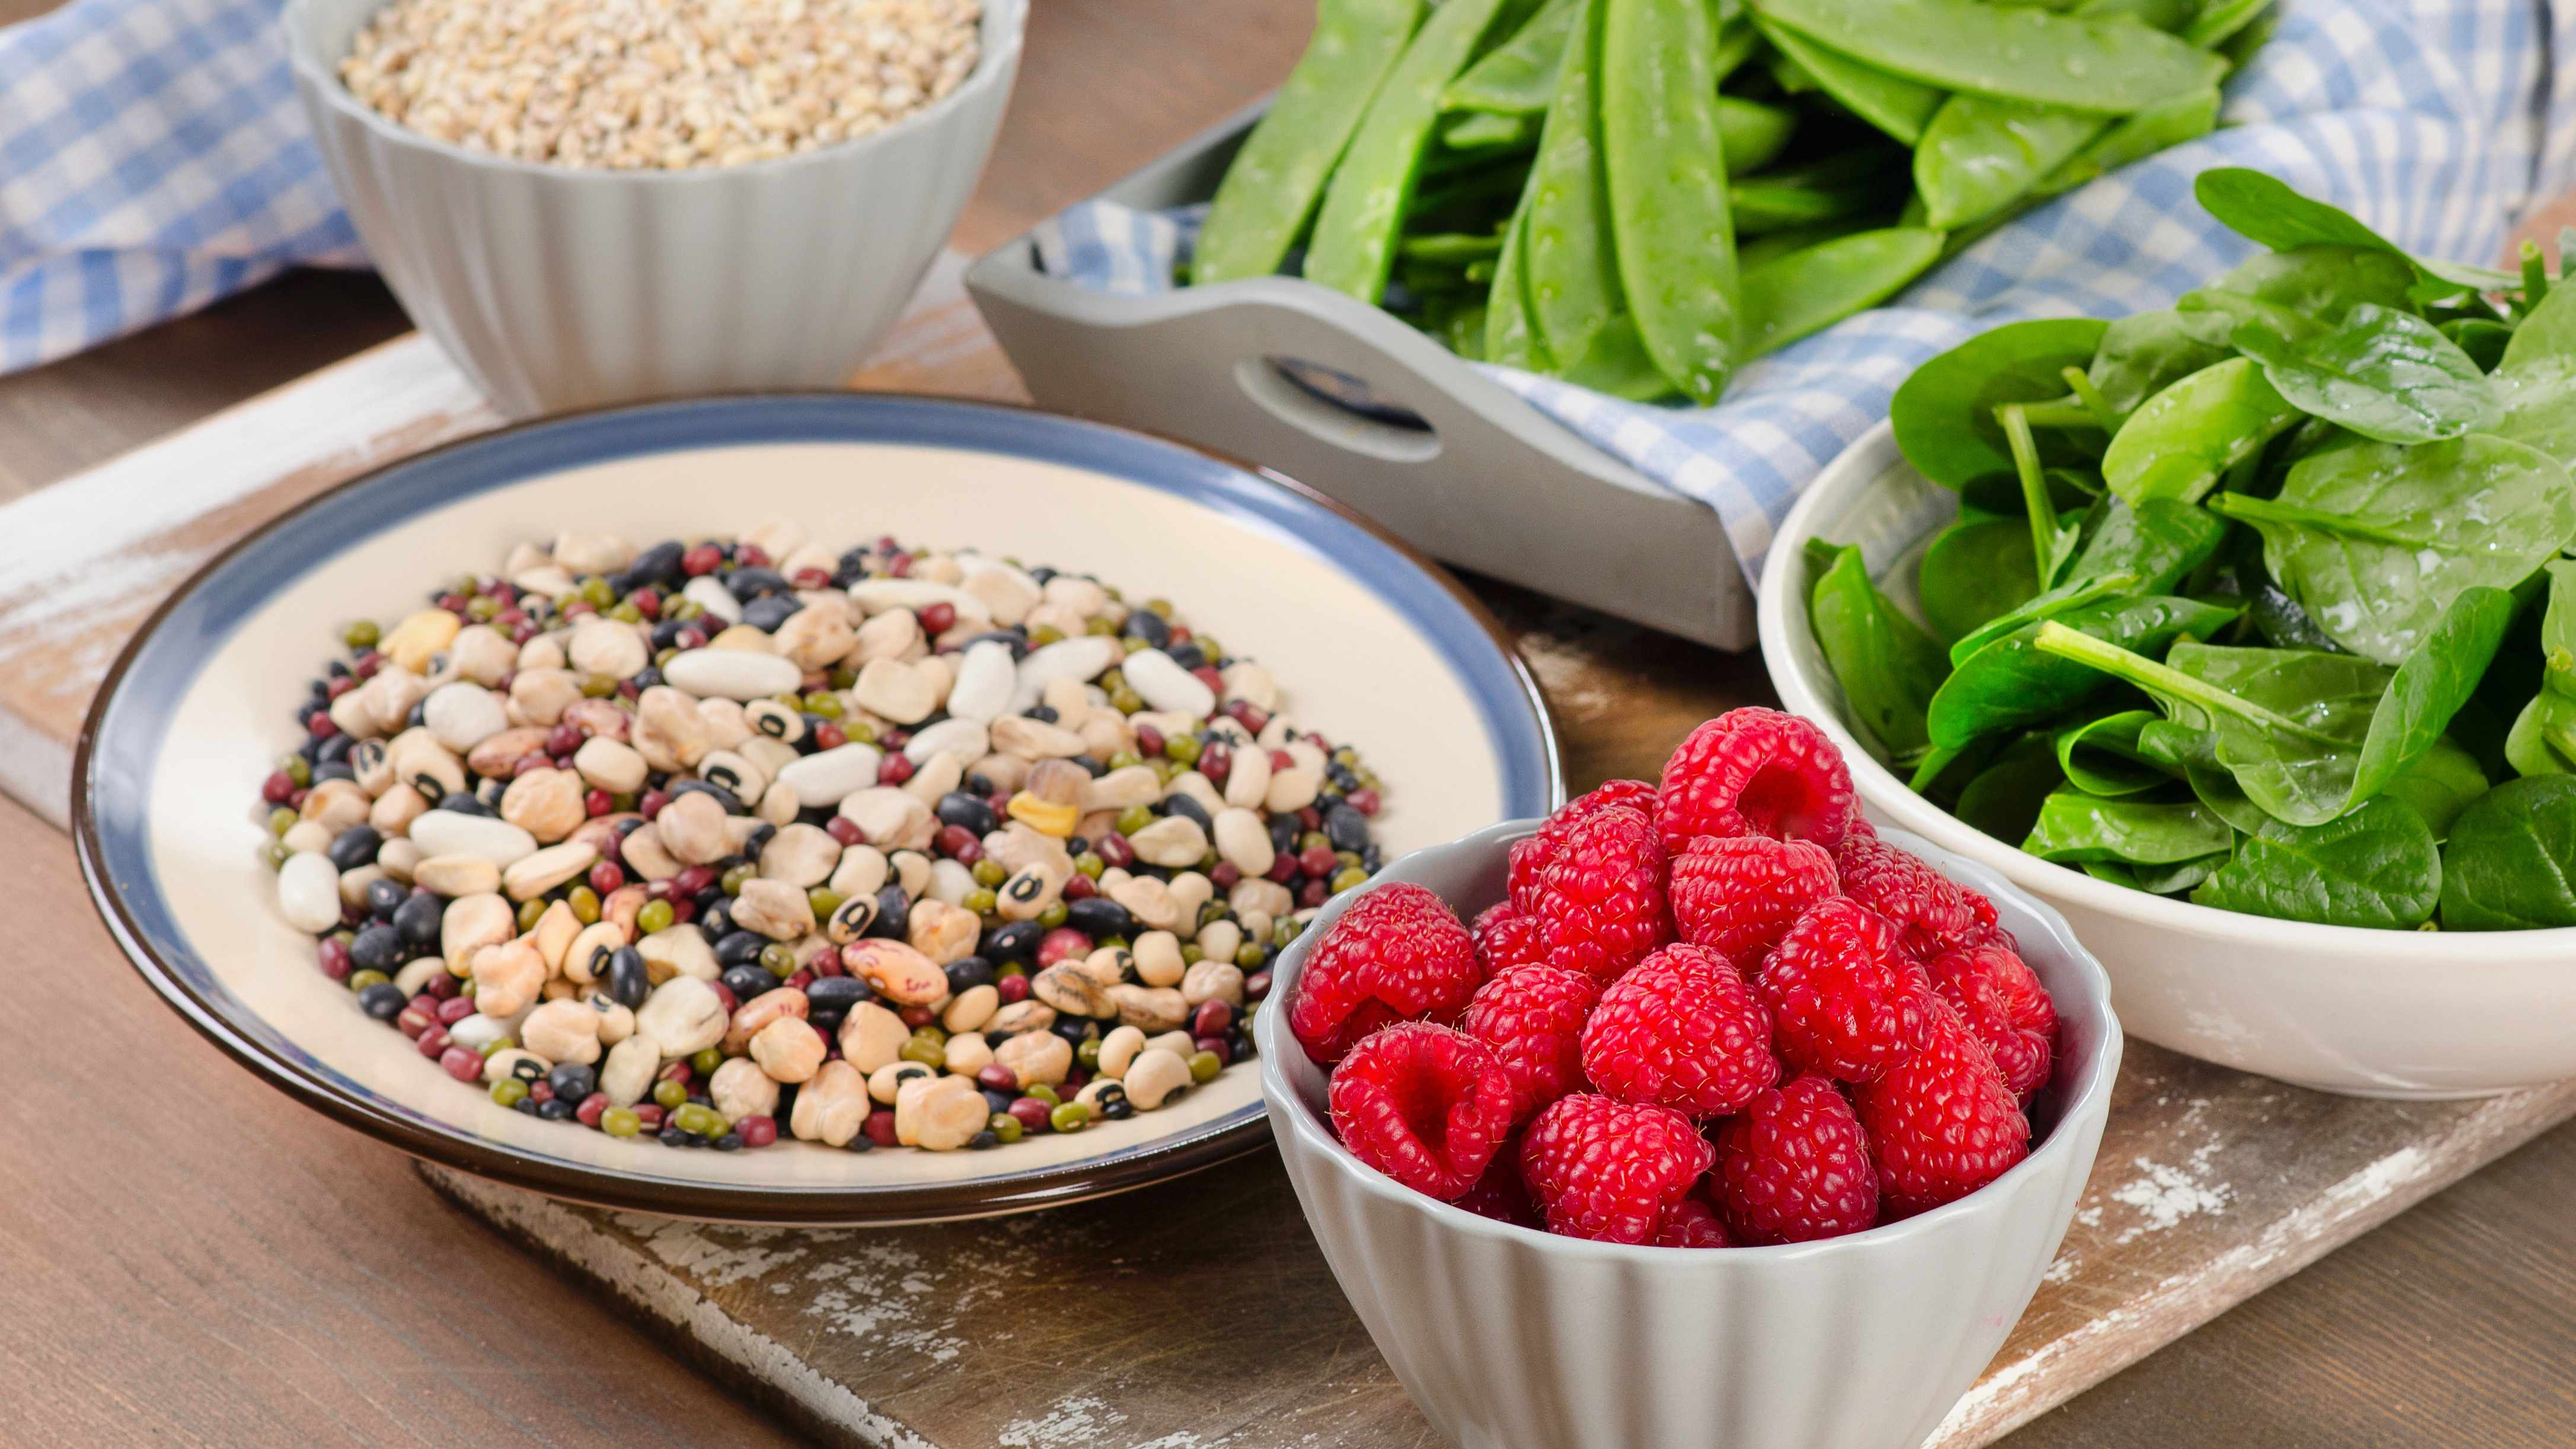 high fiber foods, spinach leaves, nuts and berries on a wood background